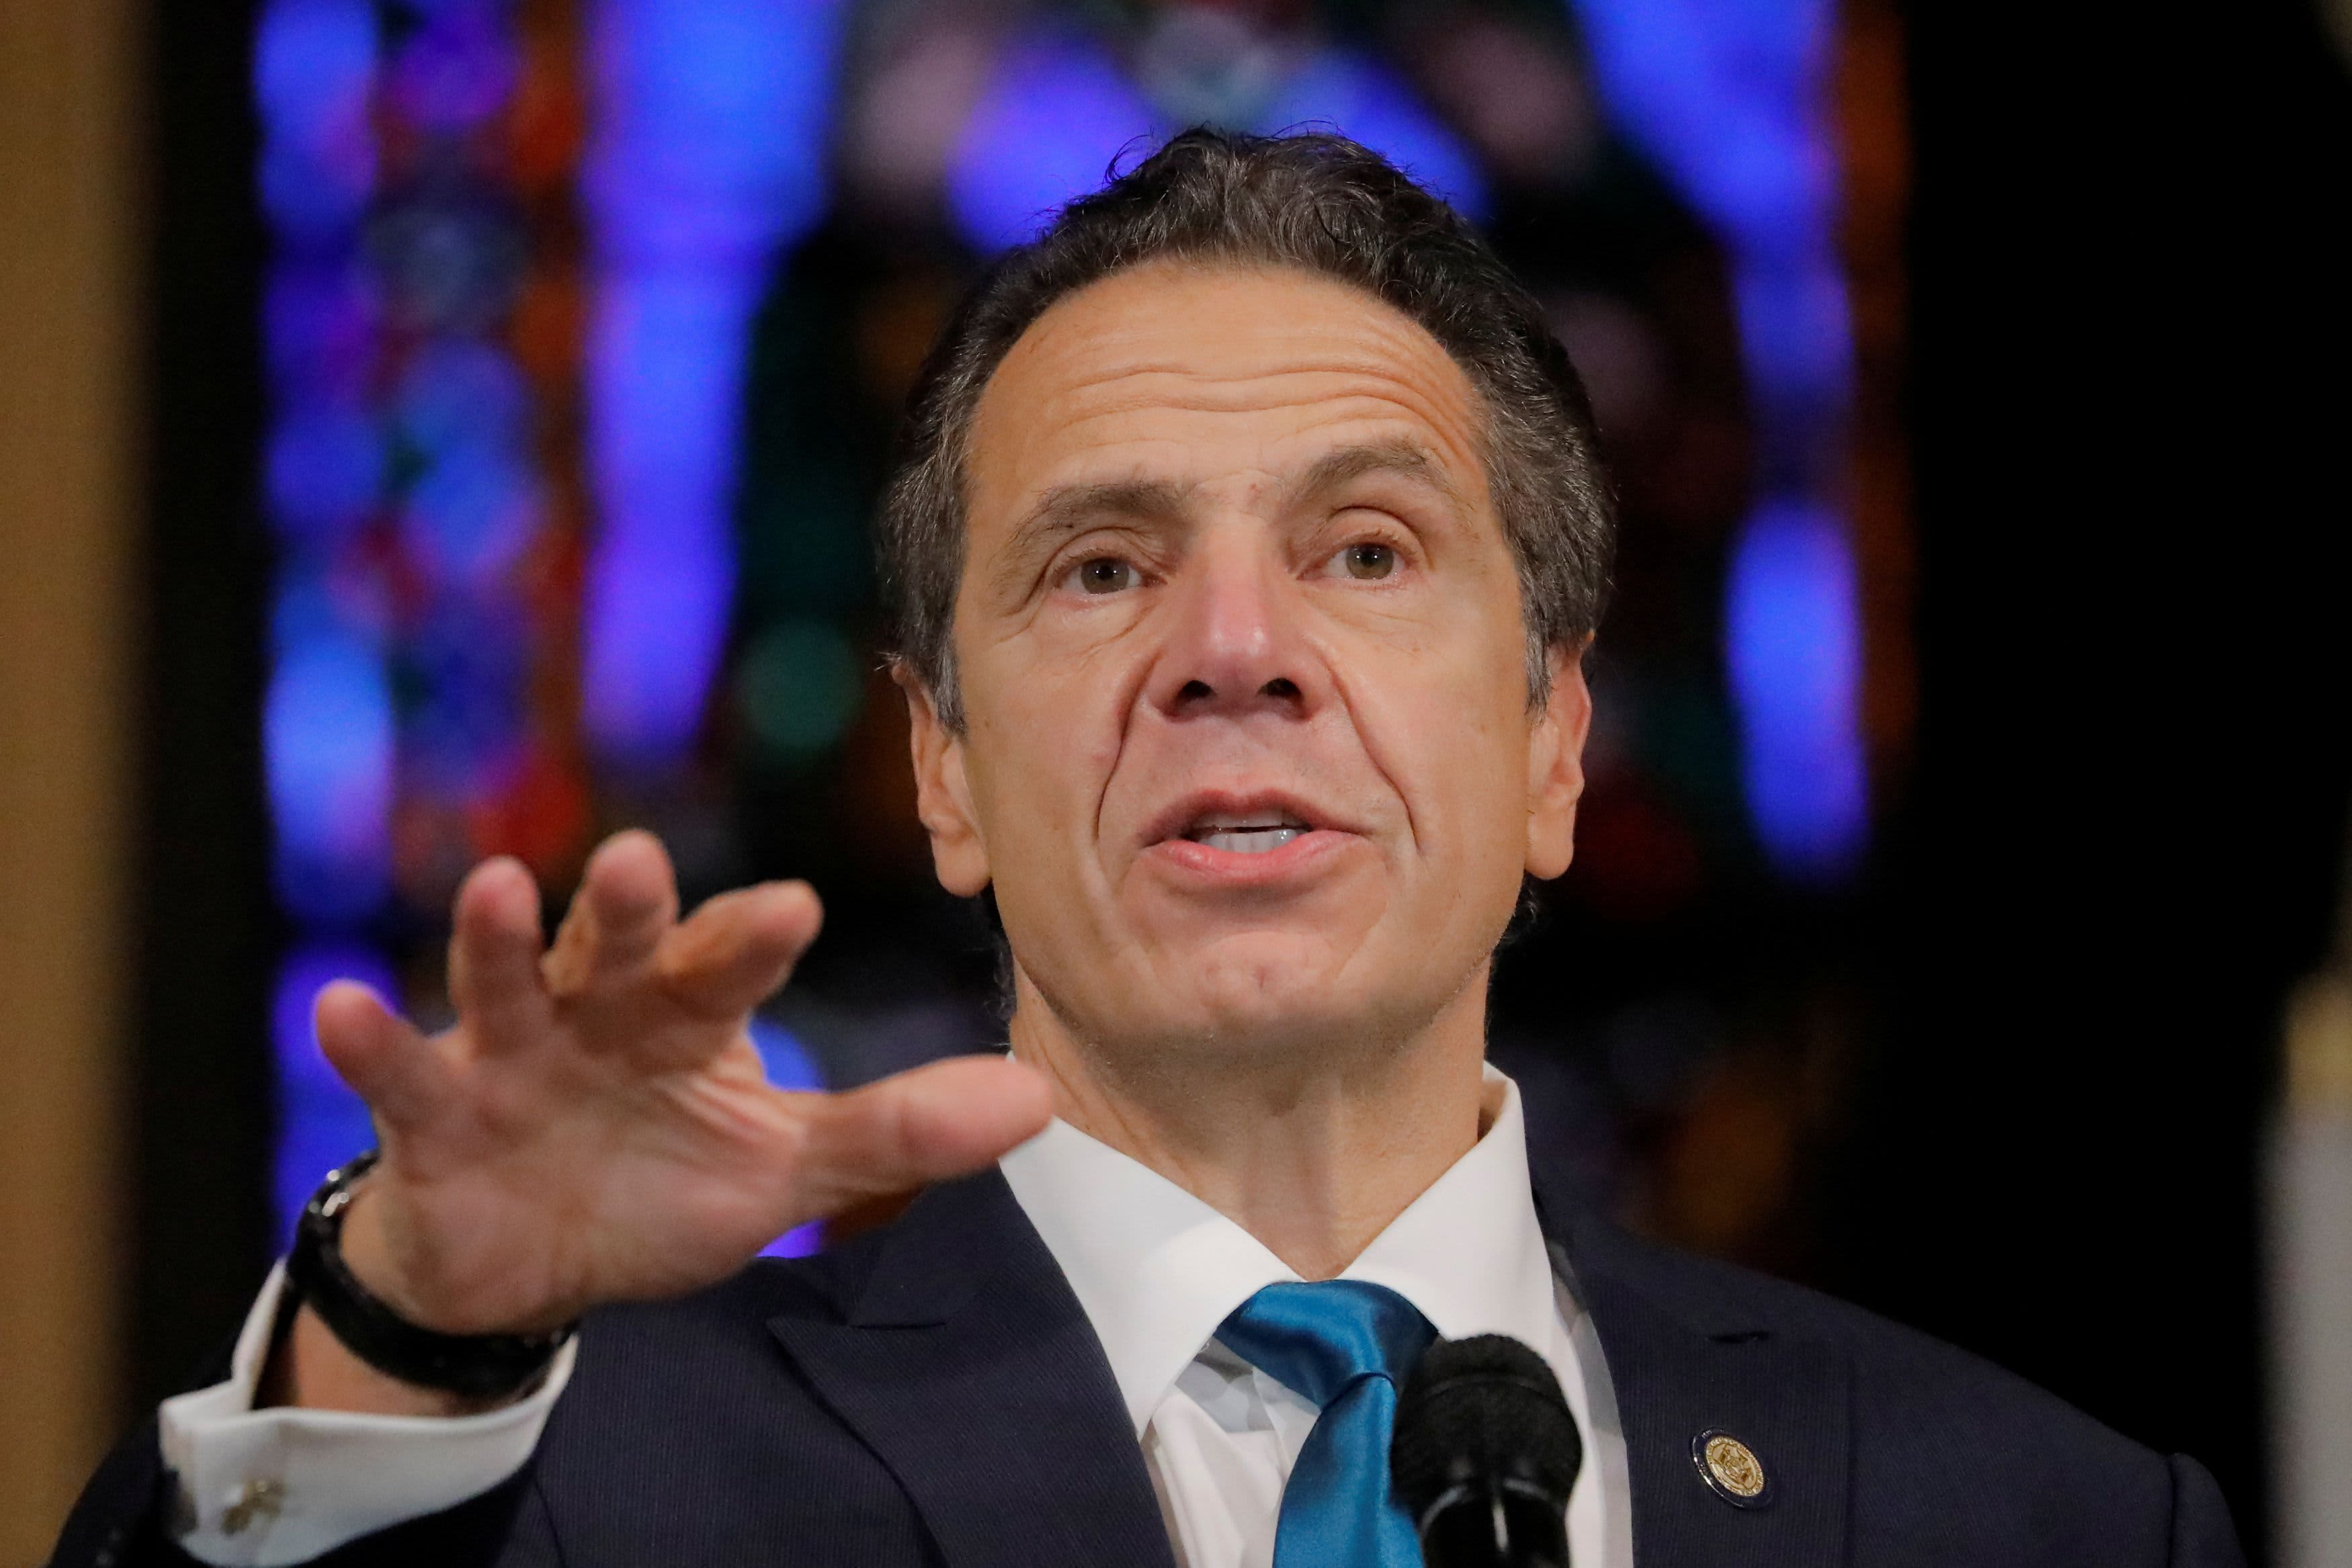 South Africa Covid variant detected in New York resident for the first time, Cuomo says